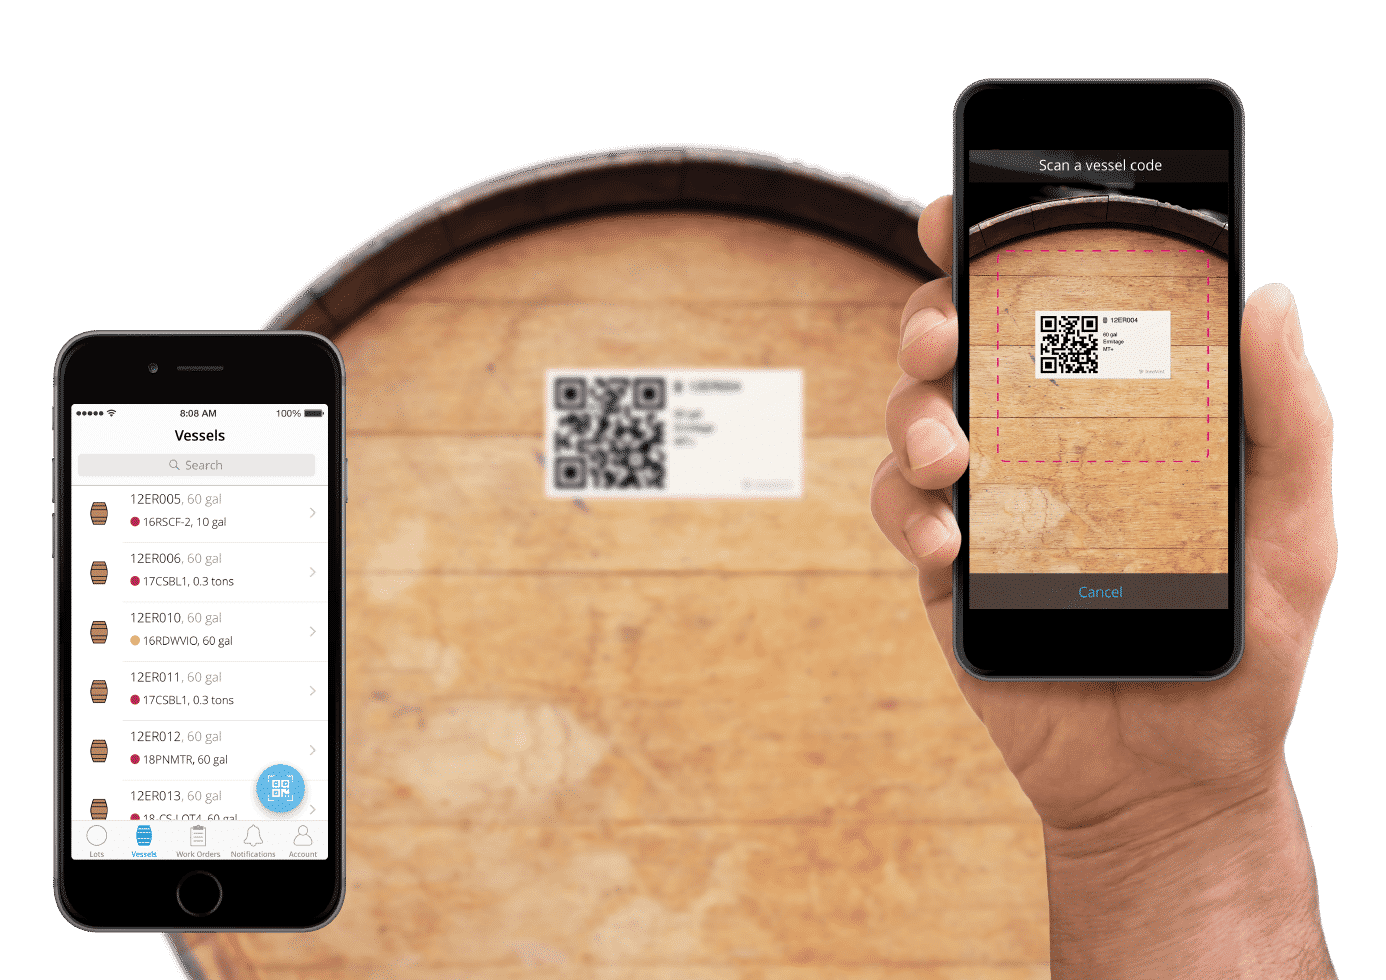 https://www.innovint.us/wp-content/uploads/2019/05/innovint-barrel-tracking-feature-1.png